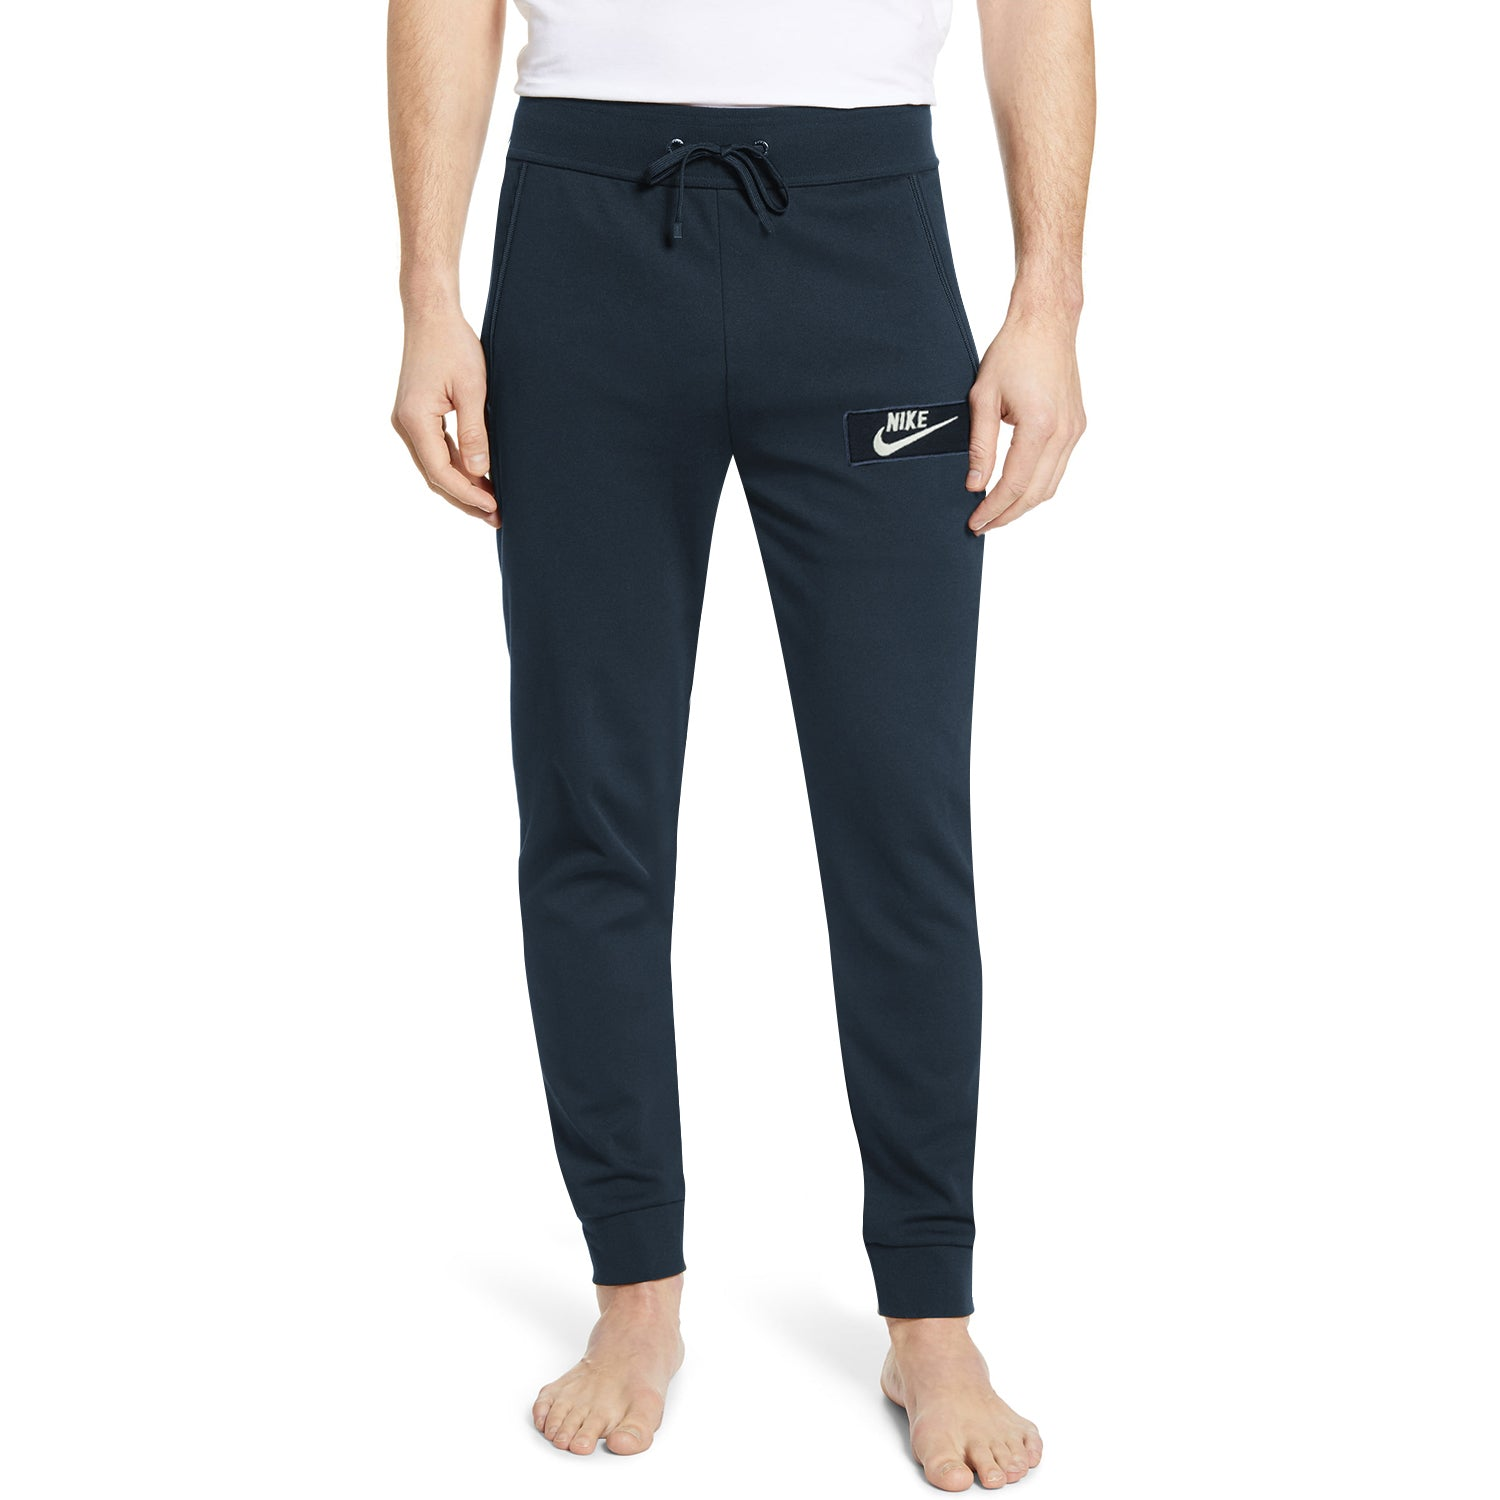 NK Fleece Slim Fit Pant Style Jogging Trouser For Men-Dark Navy with White Embroidery-BE12843